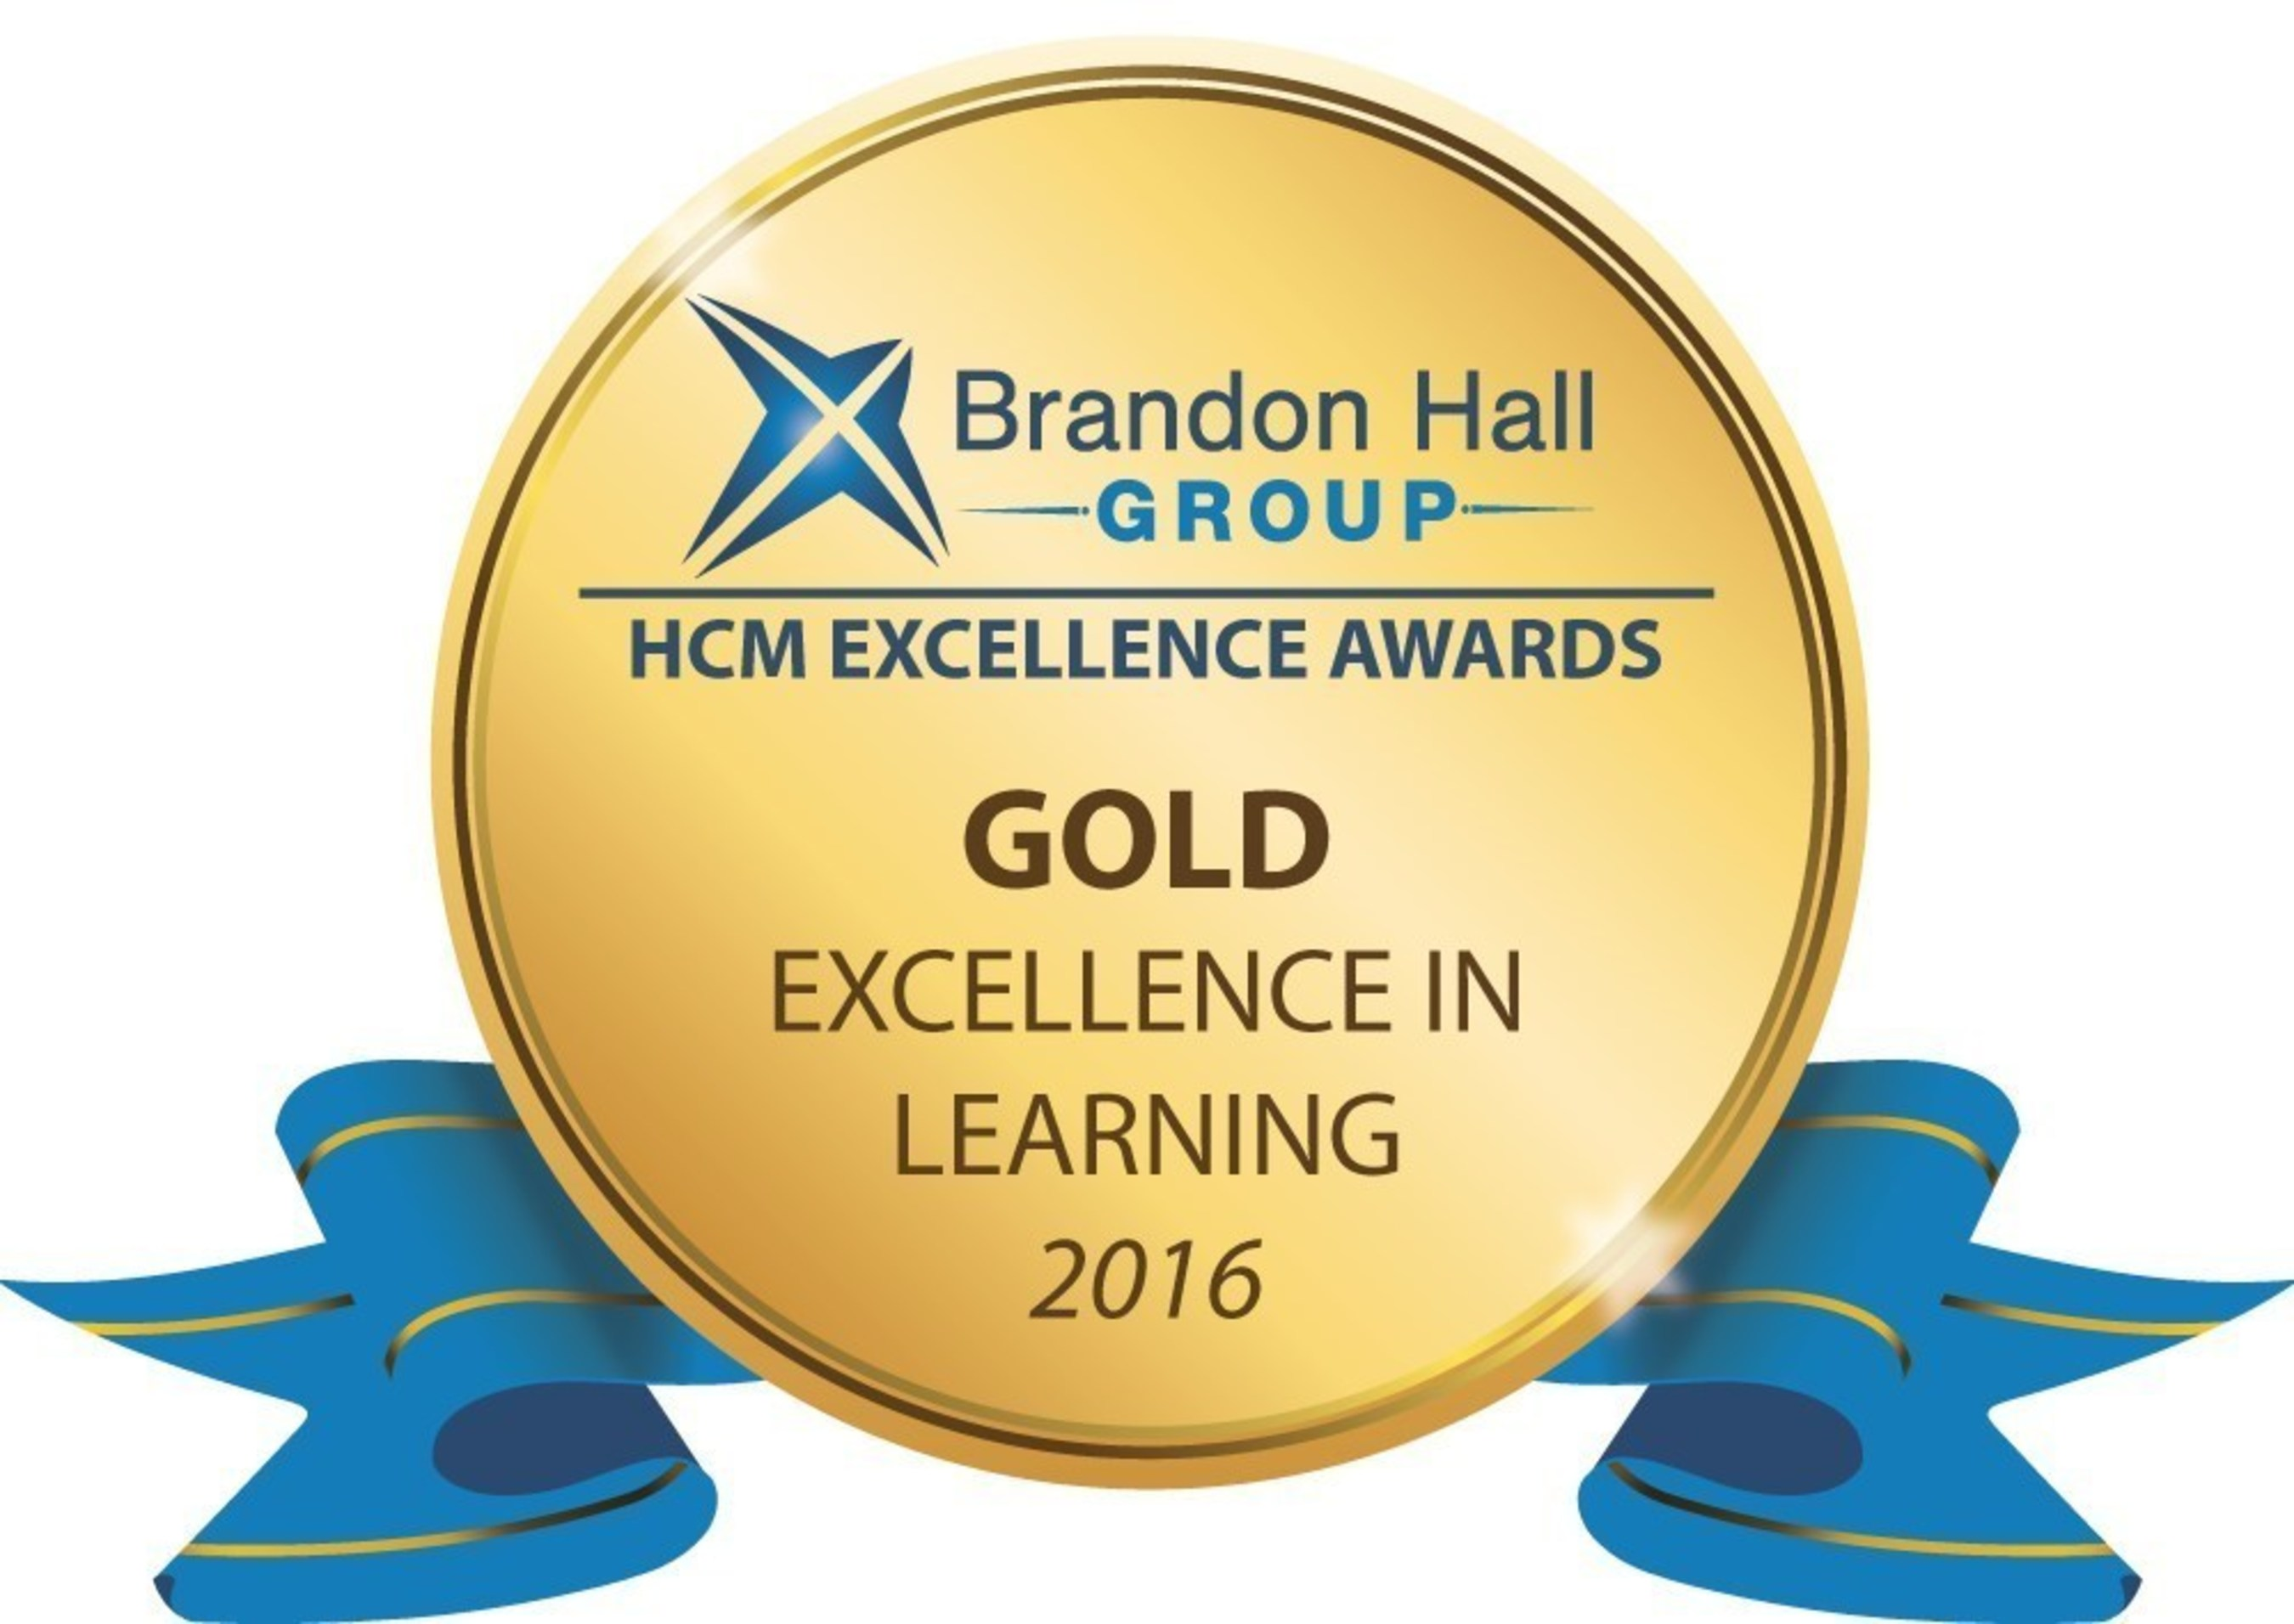 """Boeing Subsidiary CDG Team Wins a Brandon Hall Group Gold award for excellence in the Learning and Development category for """"Best Use of Games and Simulations for Learning""""."""